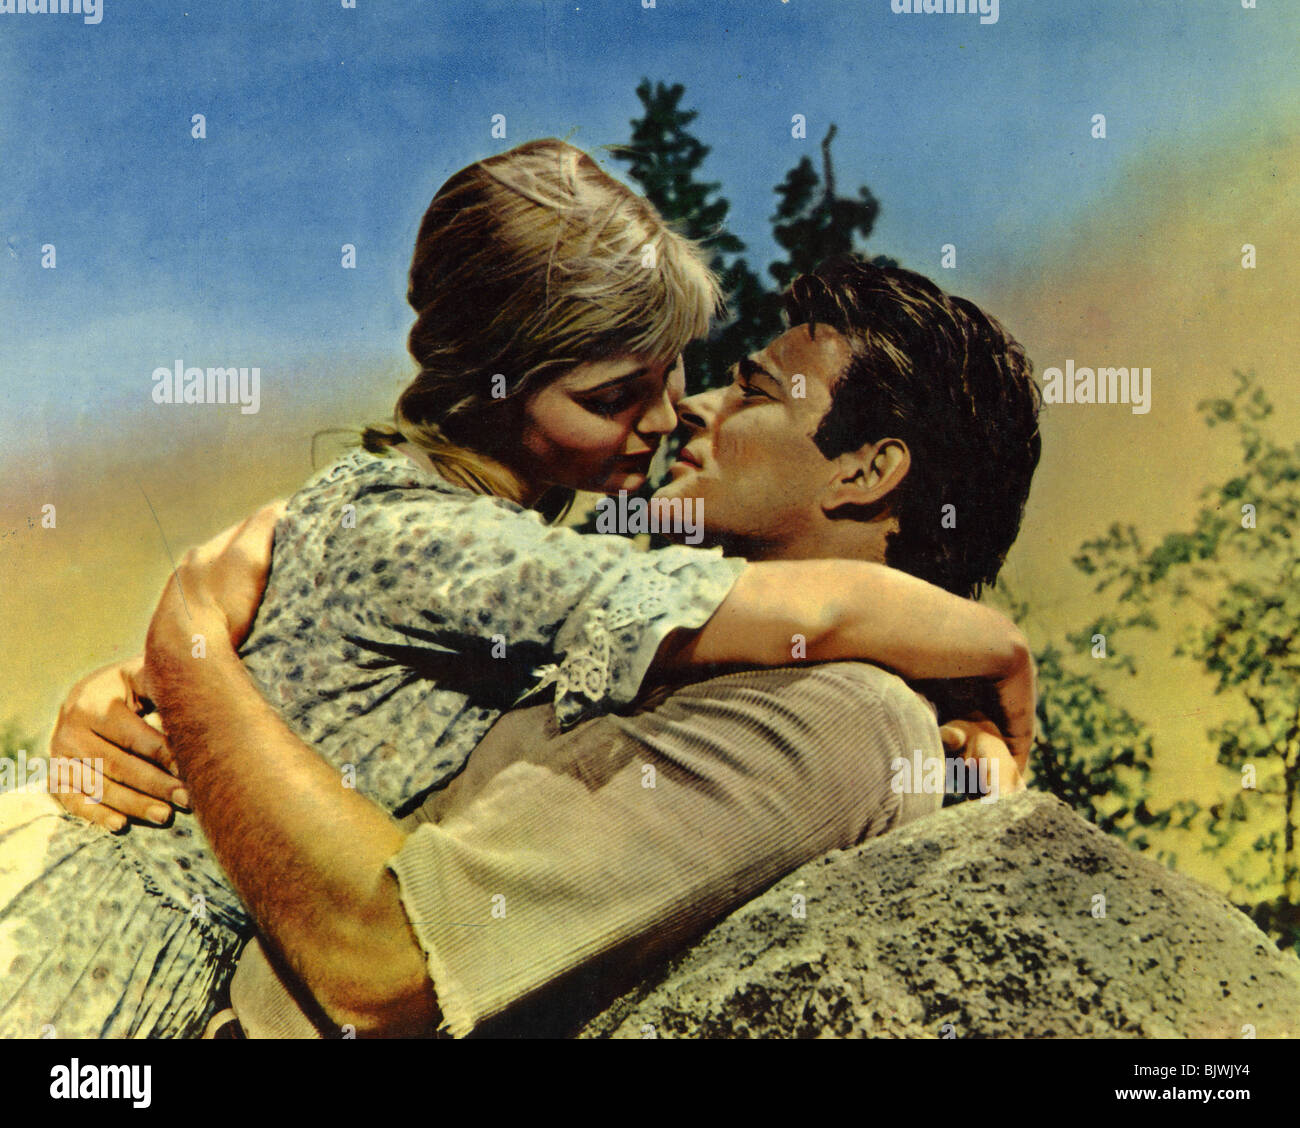 the hound dog man 1959 tcf film with stuart whitman and carol